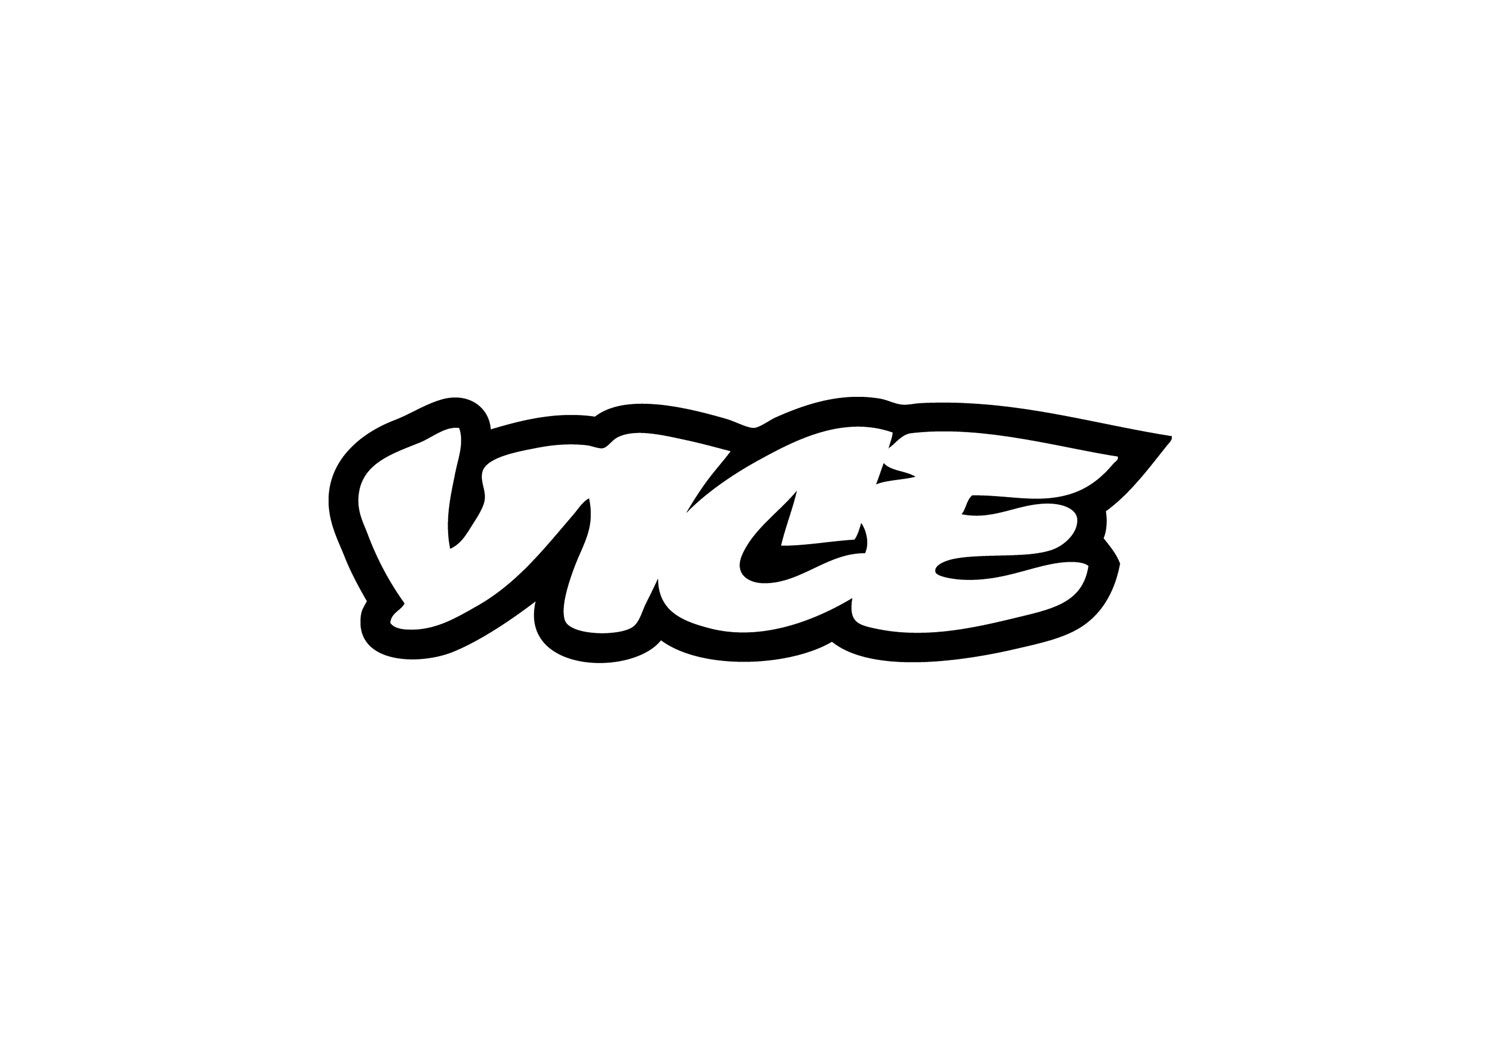 VICE  VICE are an official Media Partner of The Loop and they will be supporting the work we do with content related to the work we undertake. You can  follow The Loop x VICE here.